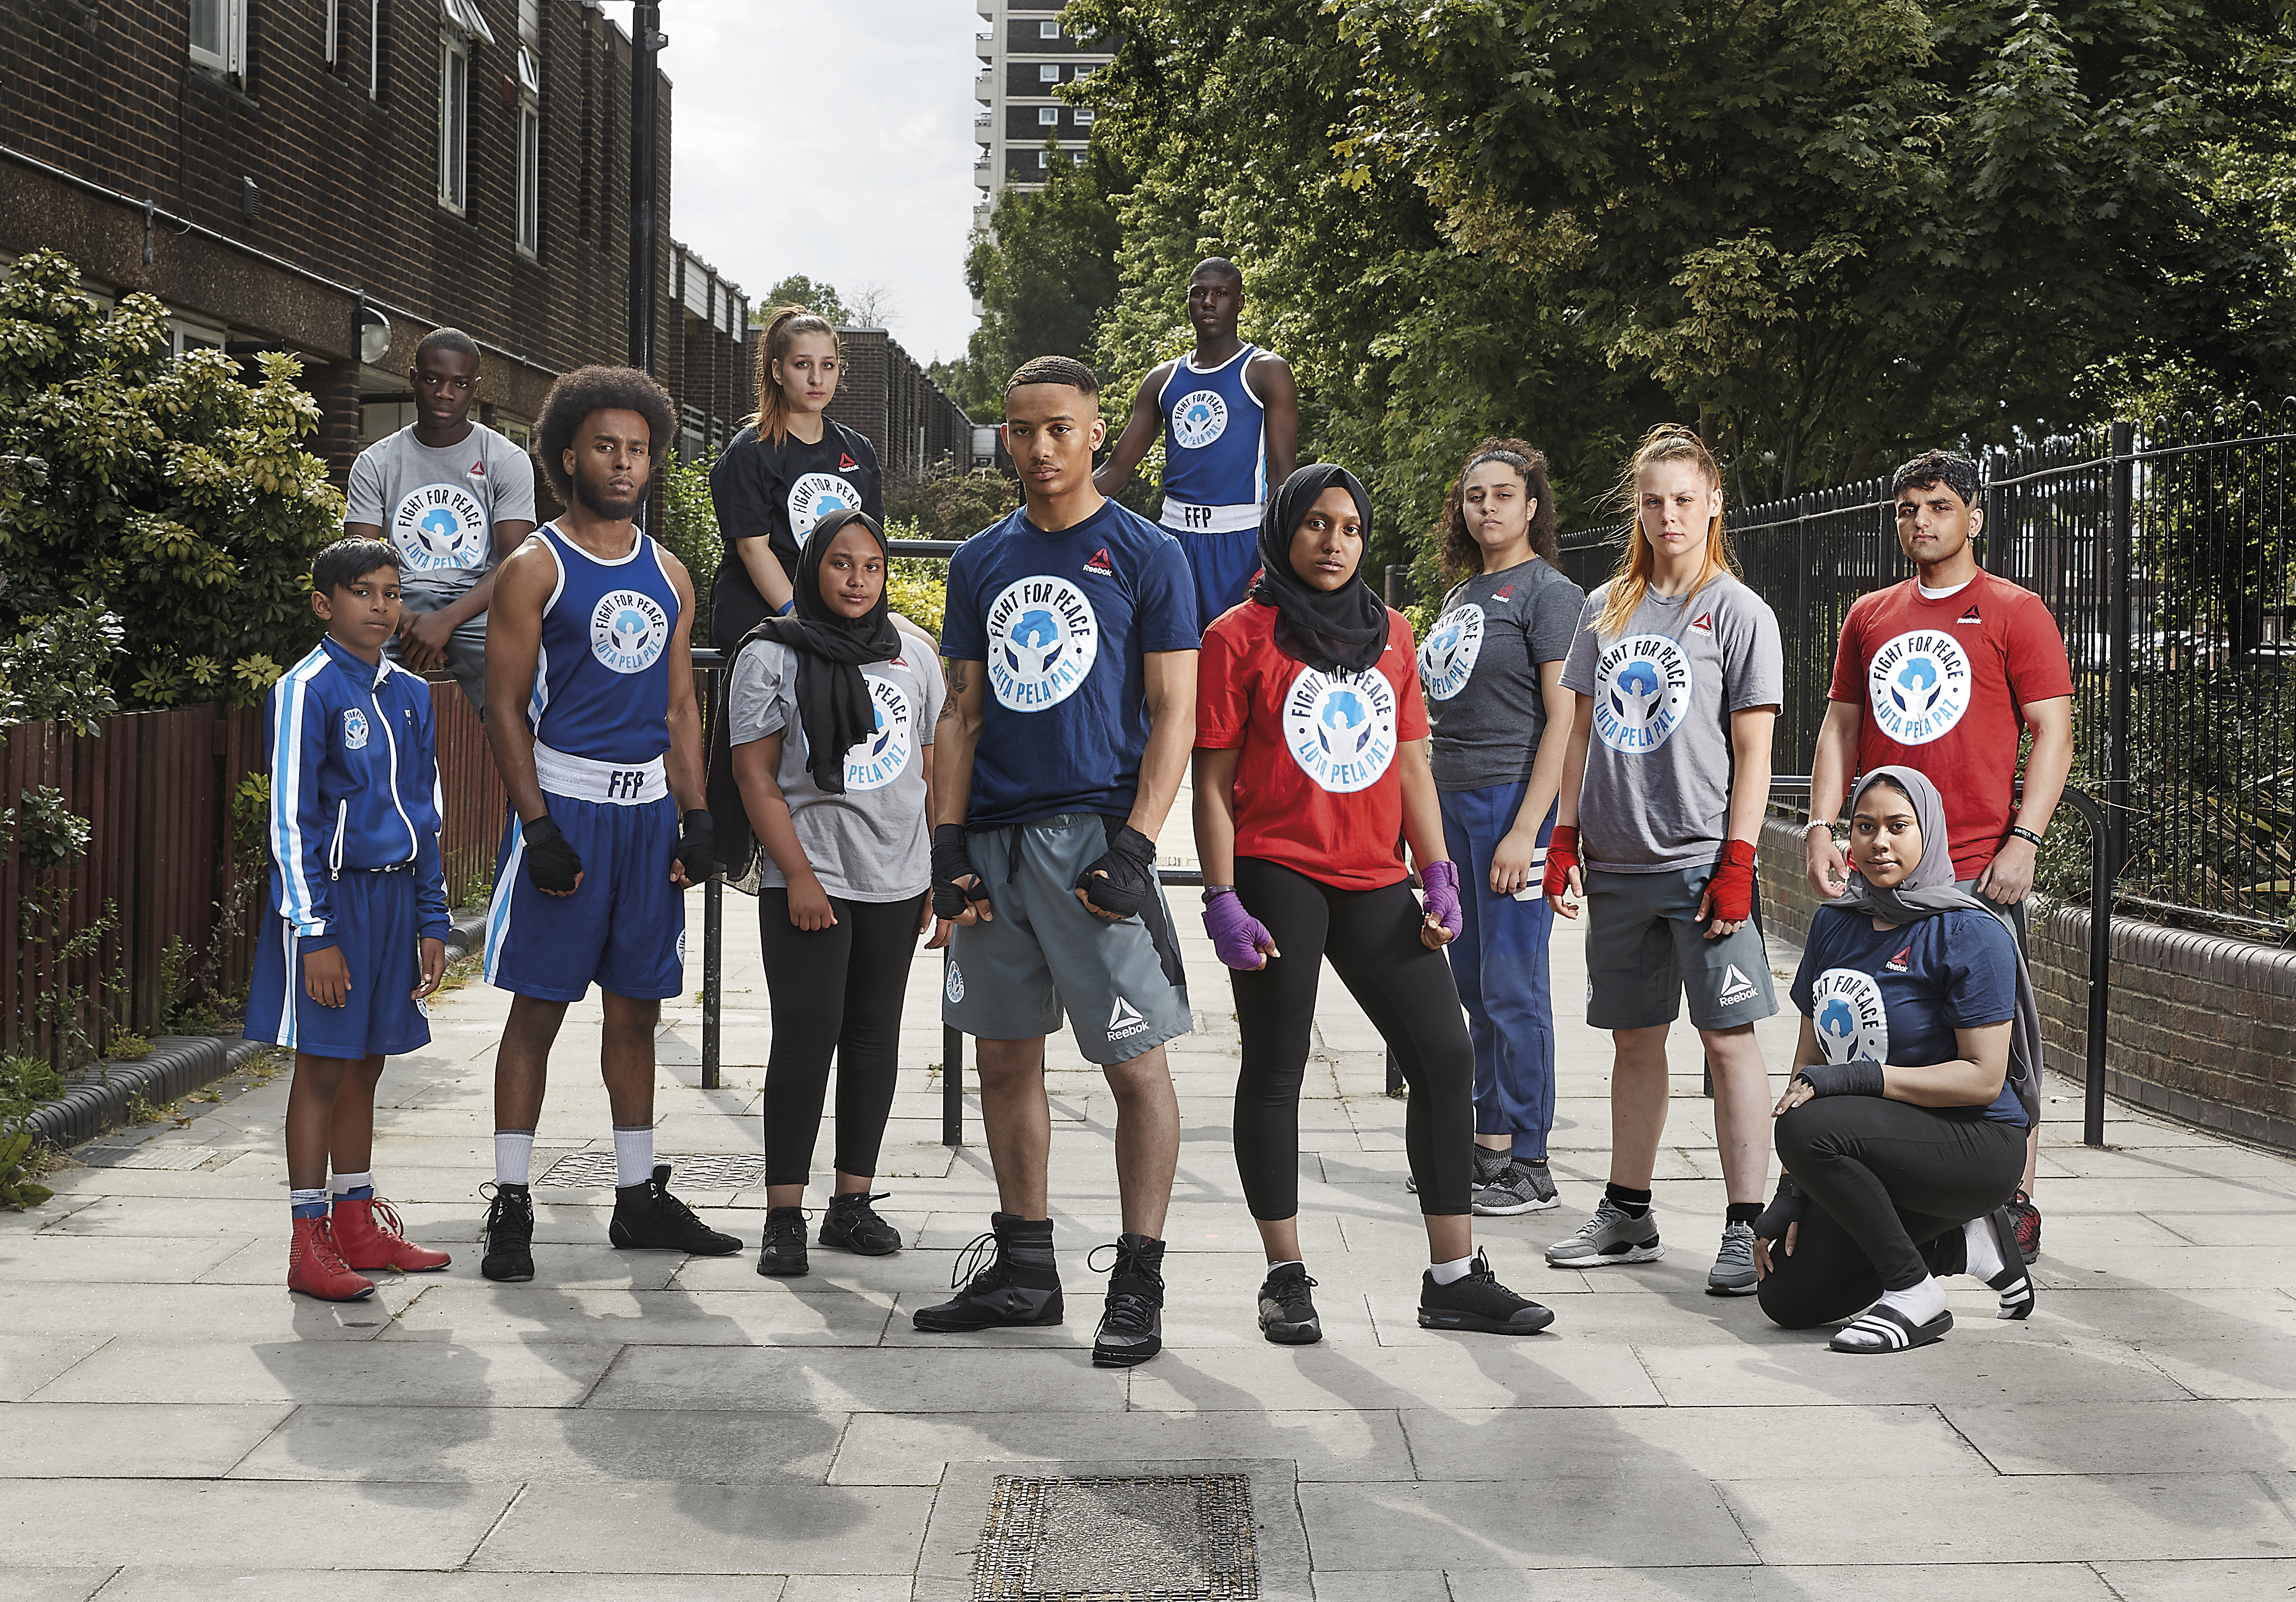 Group of young people in Fight for Peace t-shirts